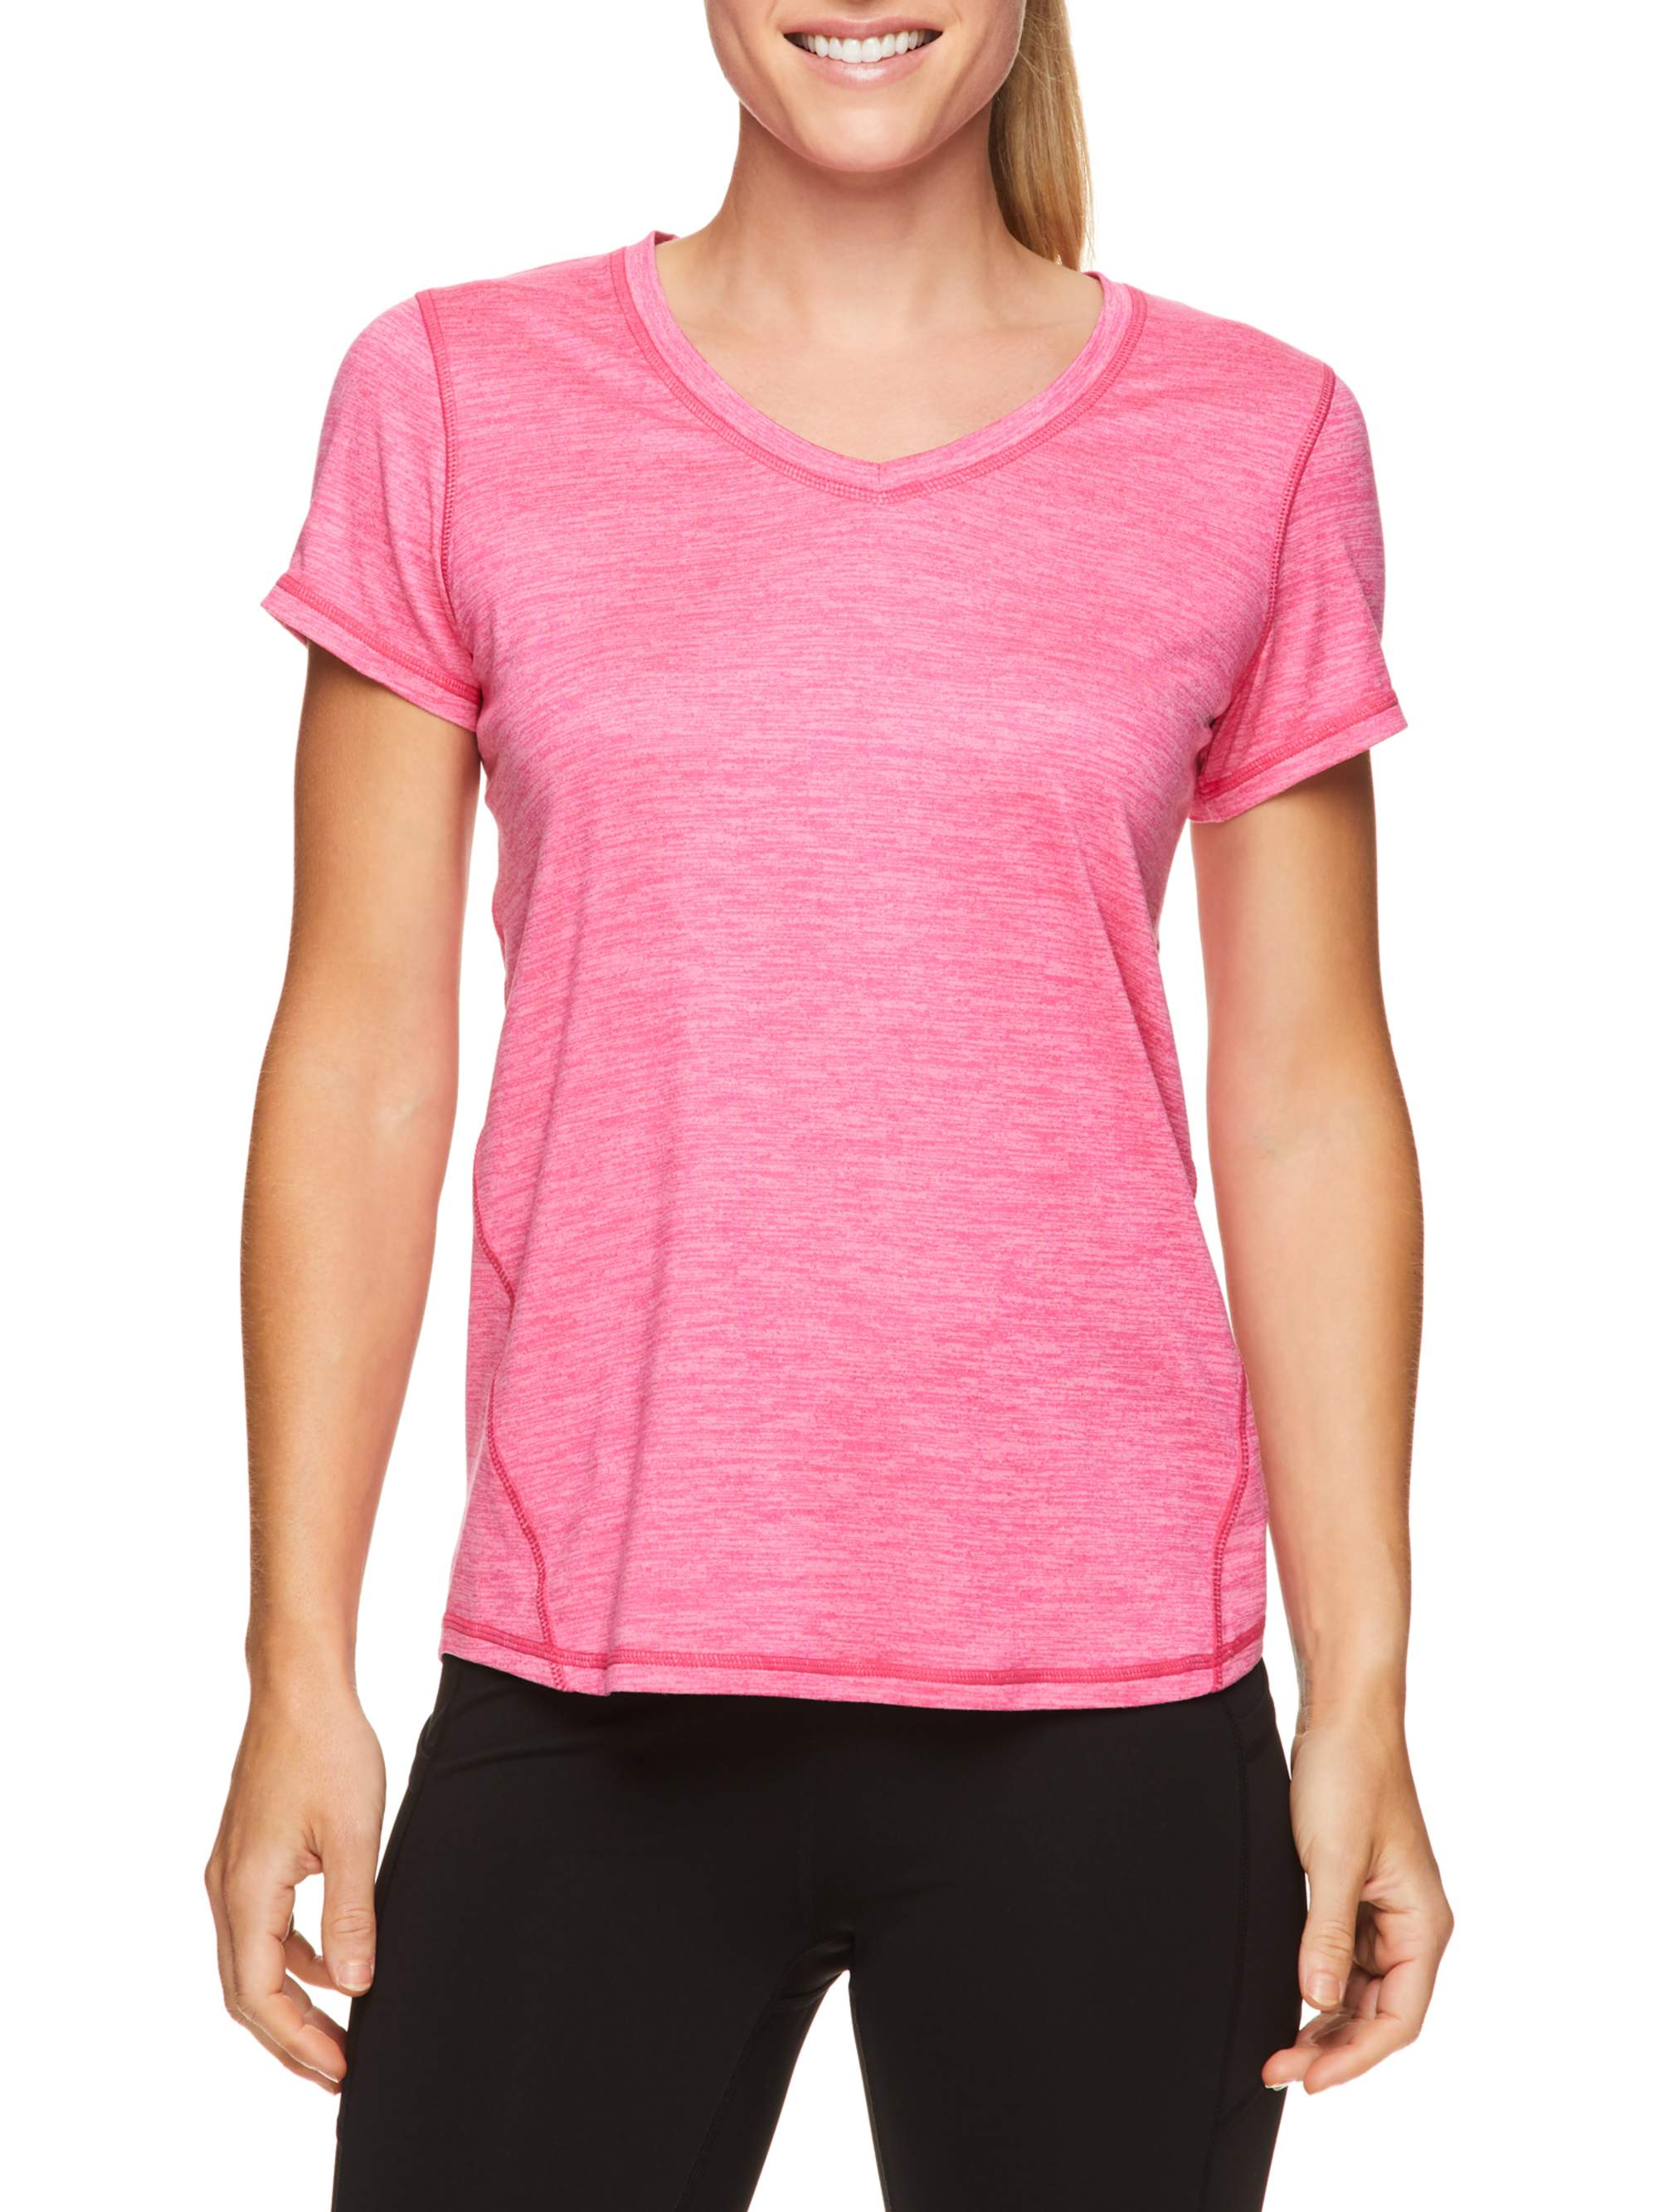 Penn - Penn Women's Active Emily Short Sleeve Top - Walmart.com